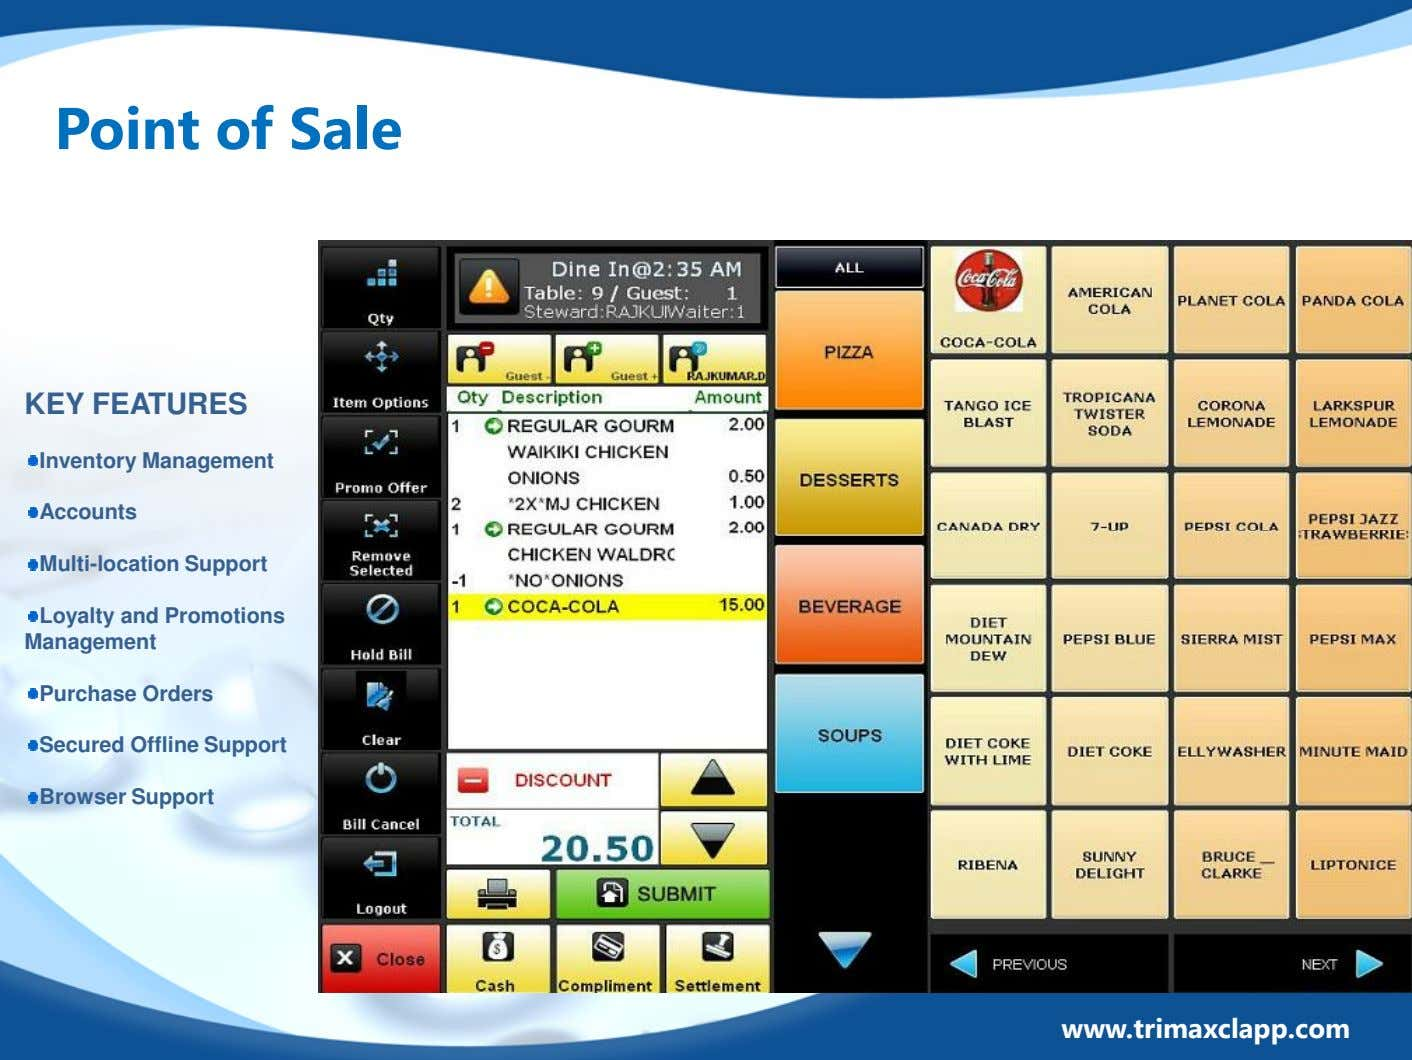 Point of Sale KEY FEATURES Inventory Management Accounts Multi-location Support Loyalty and Promotions Management